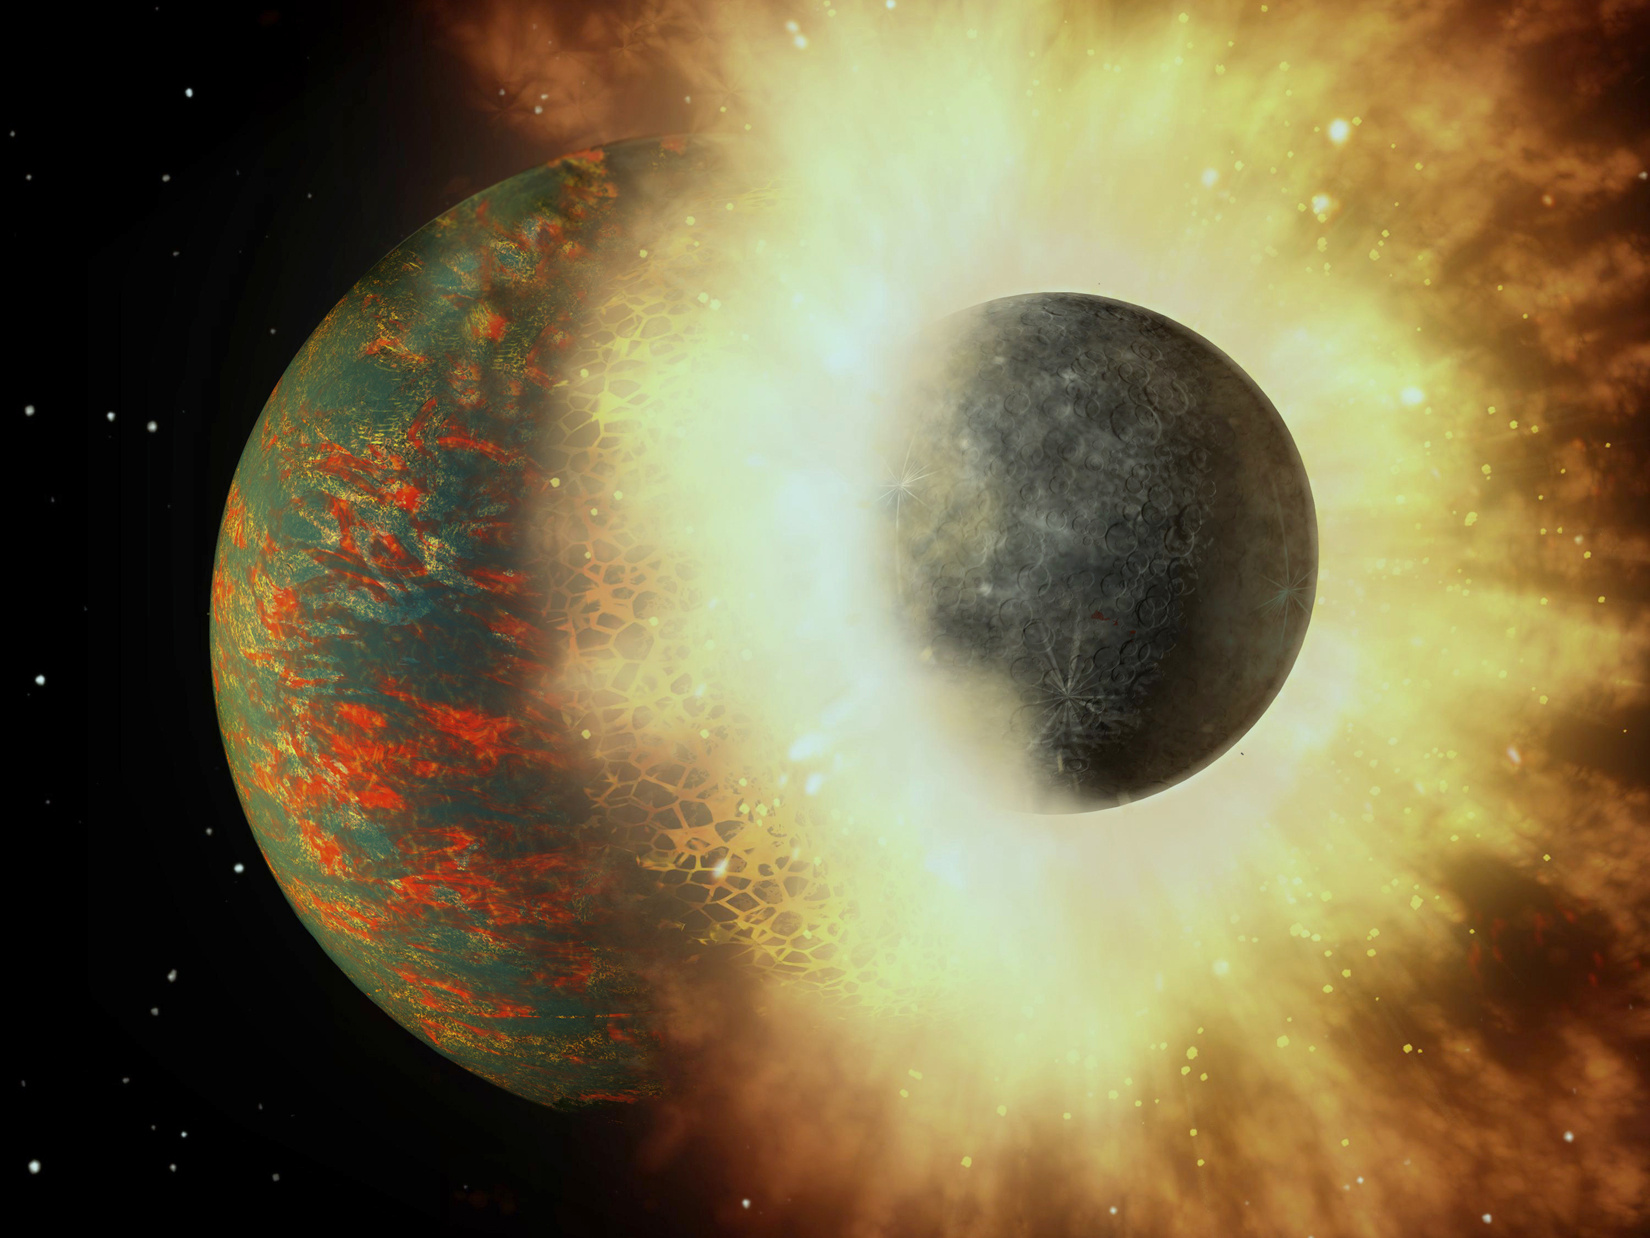 The ratio of volatile elements in Earth's mantle suggests that virtually all of the planet's life-giving carbon came from a collision with an embryonic planet approximately 100million years after Earth formed. Image credit: A. Passwaters/Rice University based on original courtesy of NASA/JPL-Caltech.